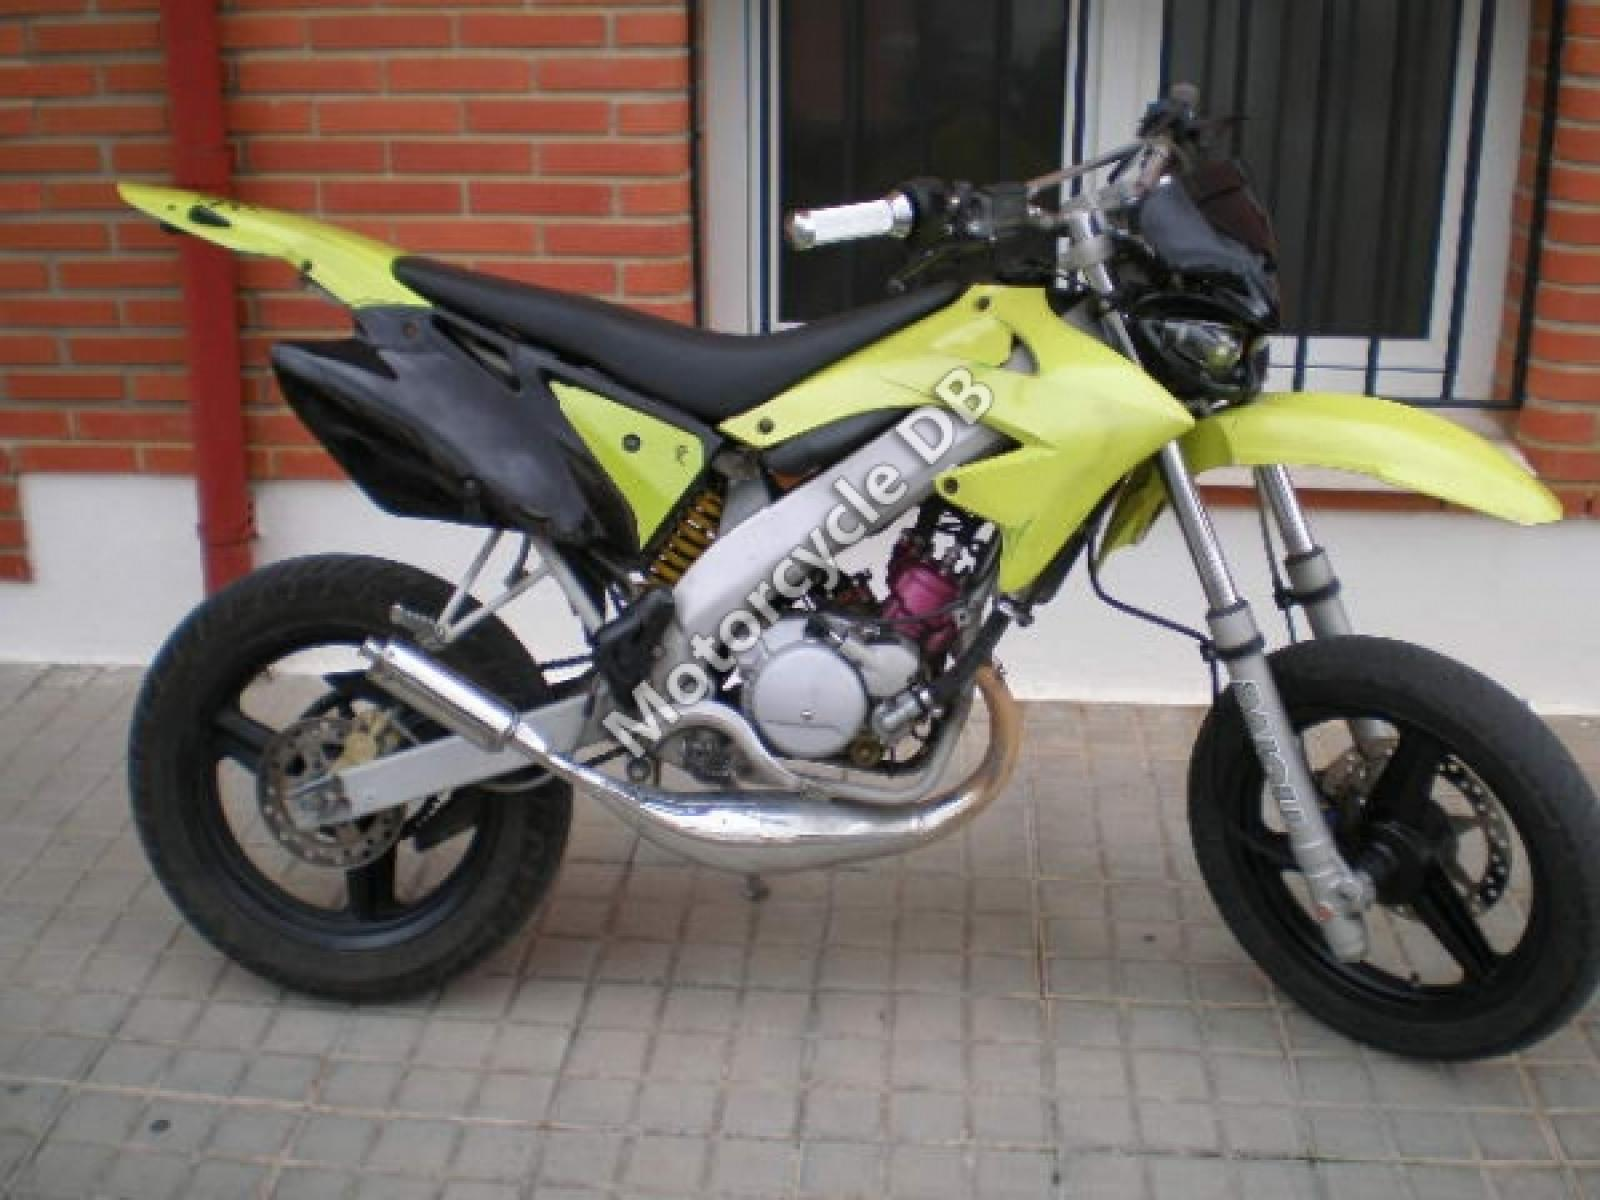 Motorhispania RYZ 49 Supermotard images #112558